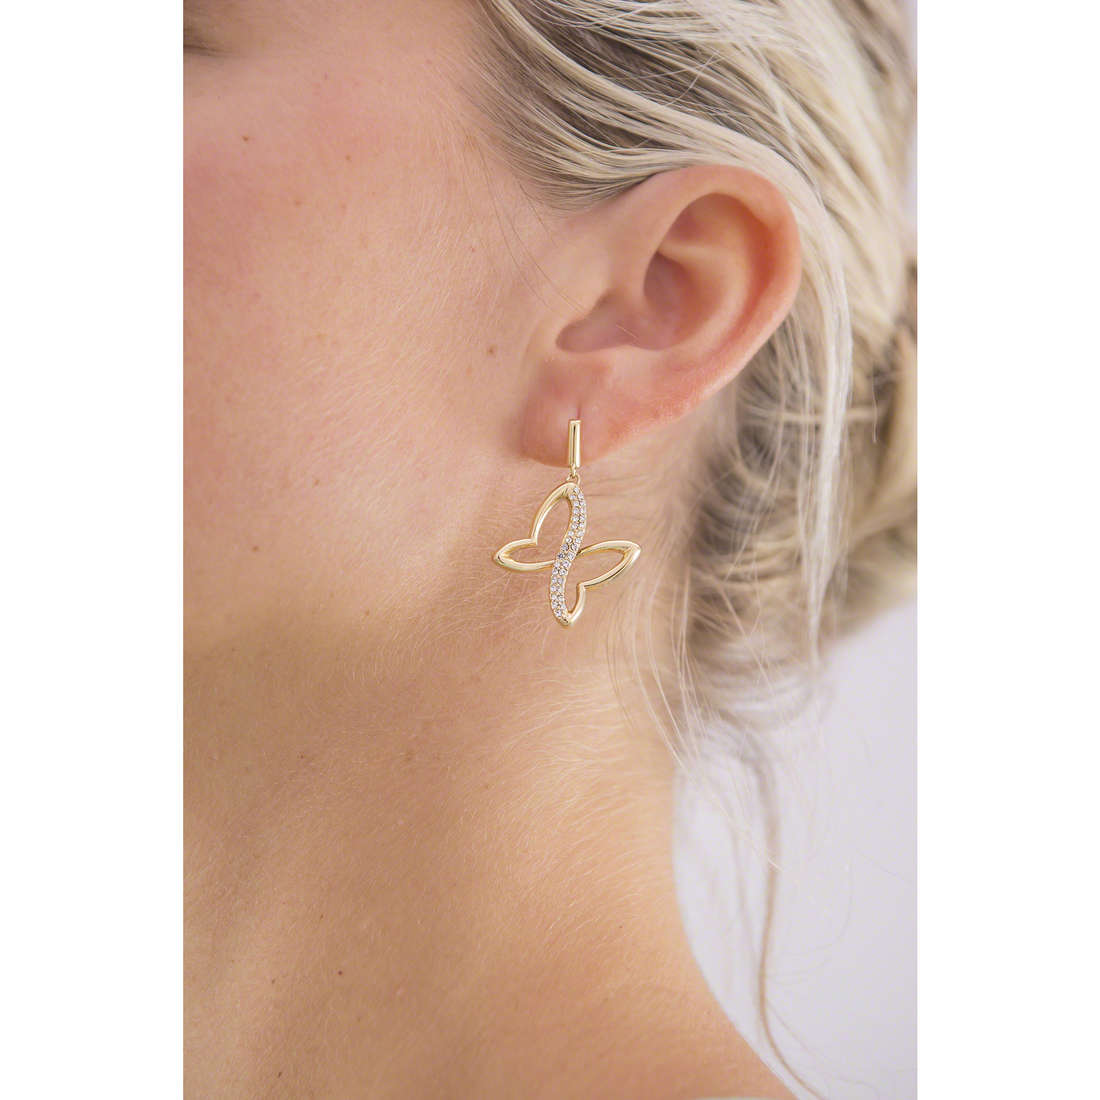 Morellato earrings Battito woman SAHO08 indosso